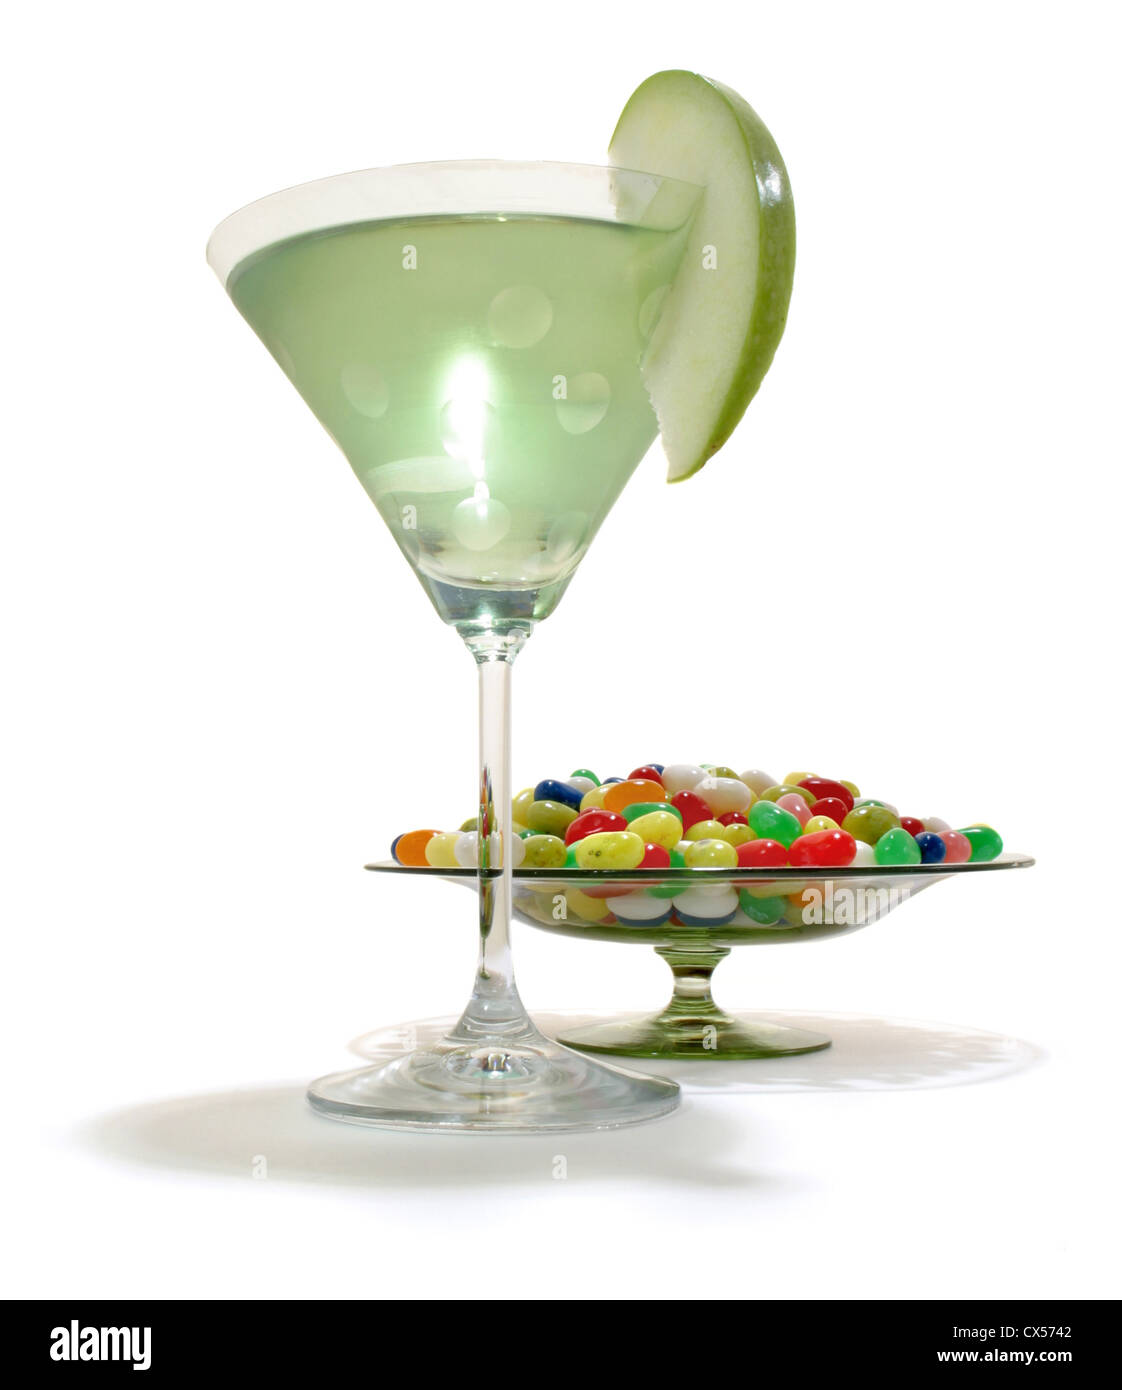 Apple Martini and Jellybeans in a dish photographed on a white background - Stock Image